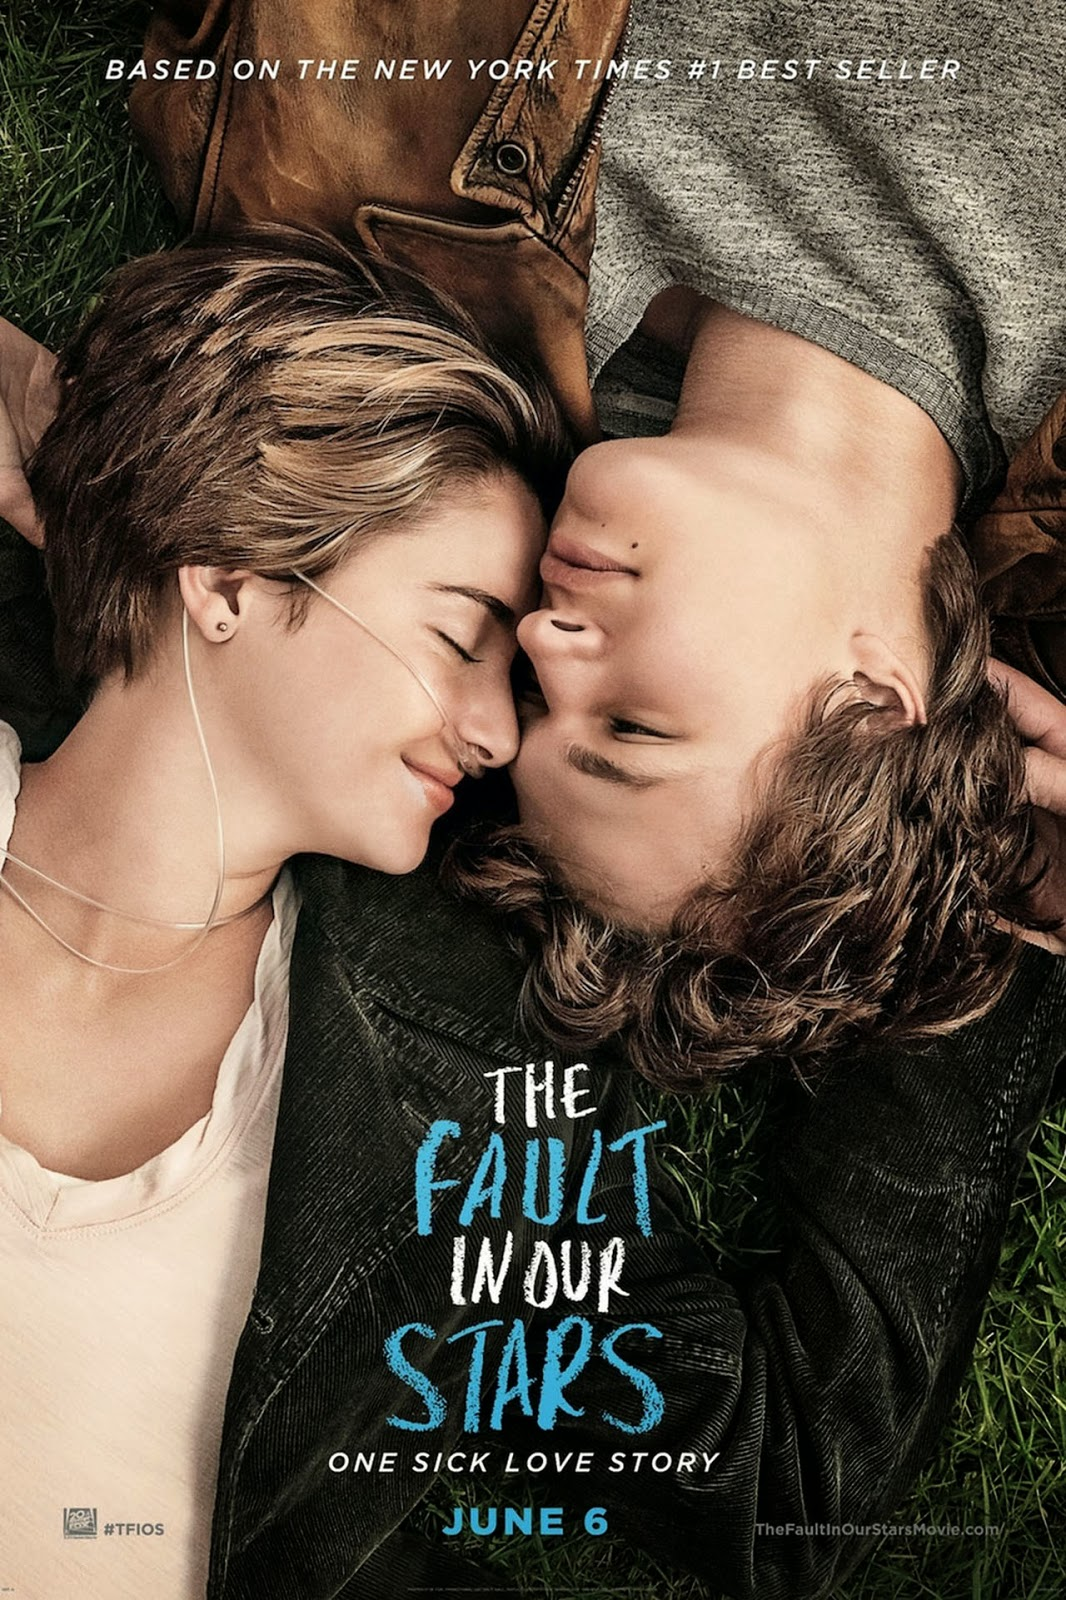 THEATRICAL REVIEW: The Fault in Our Stars | The Viewer's